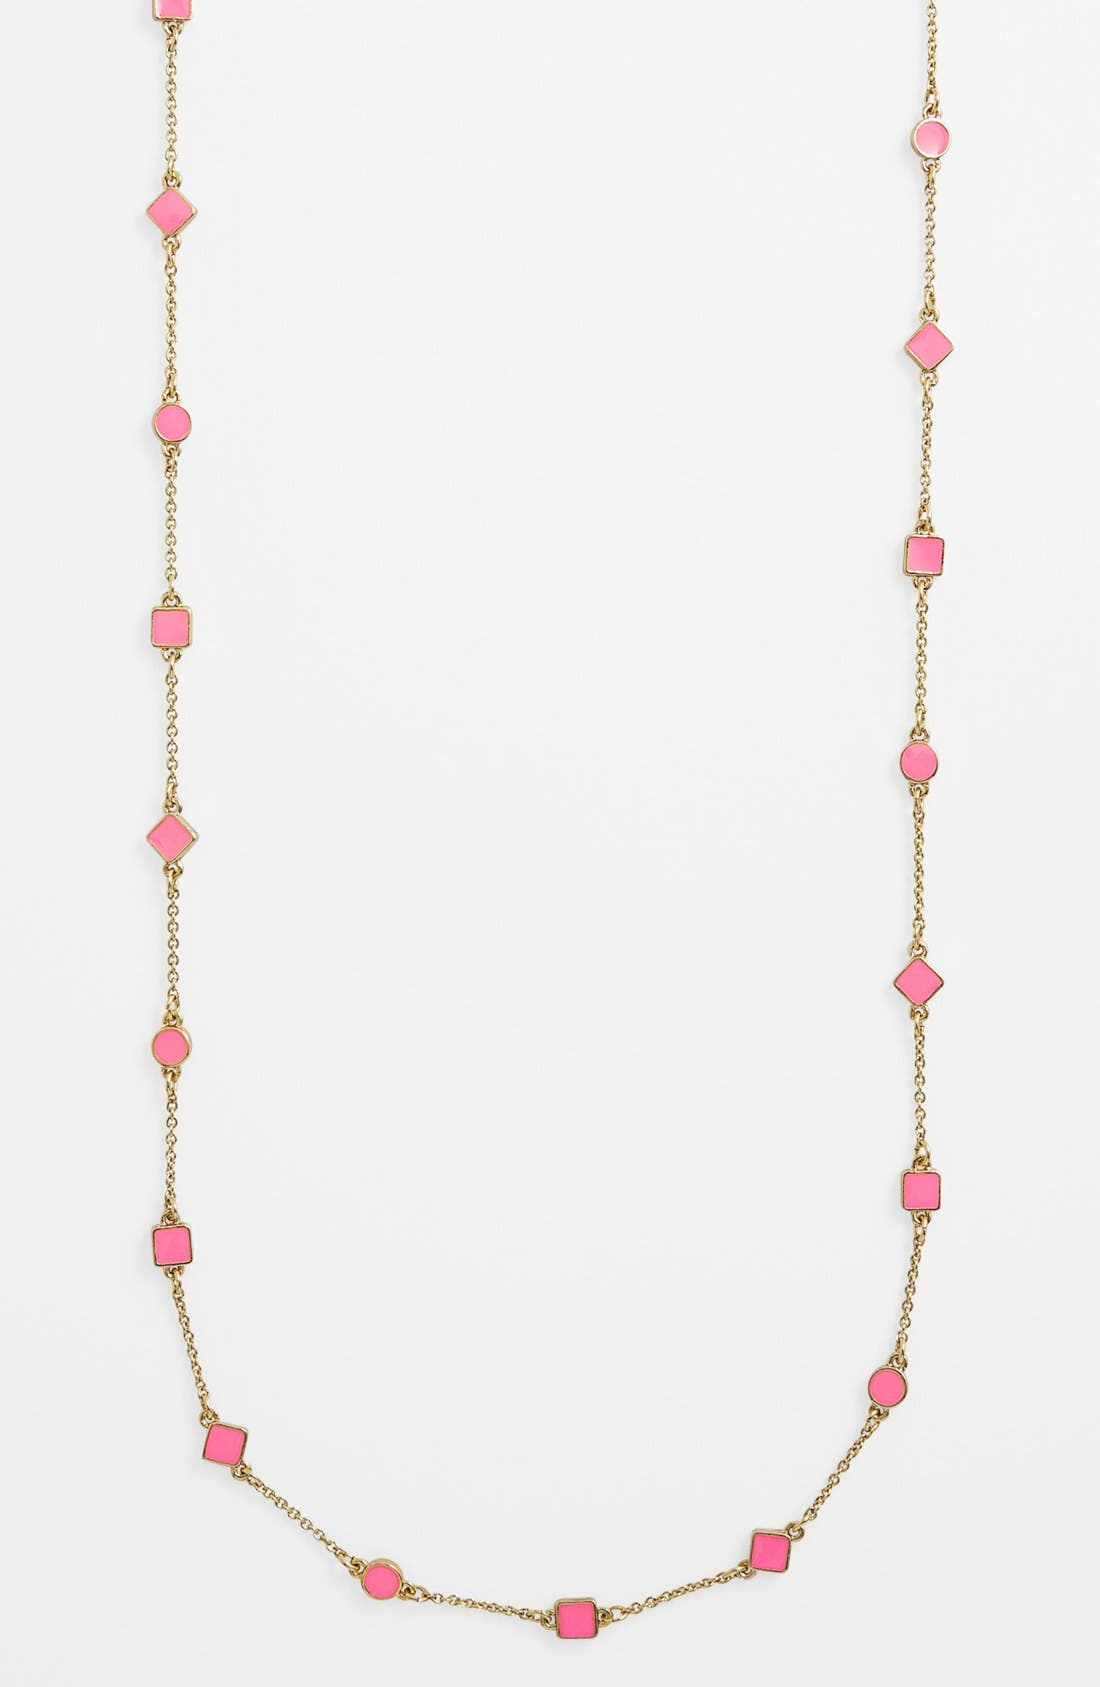 Alternate Image 1 Selected - kate spade new york 'cubetti' extra long station necklace